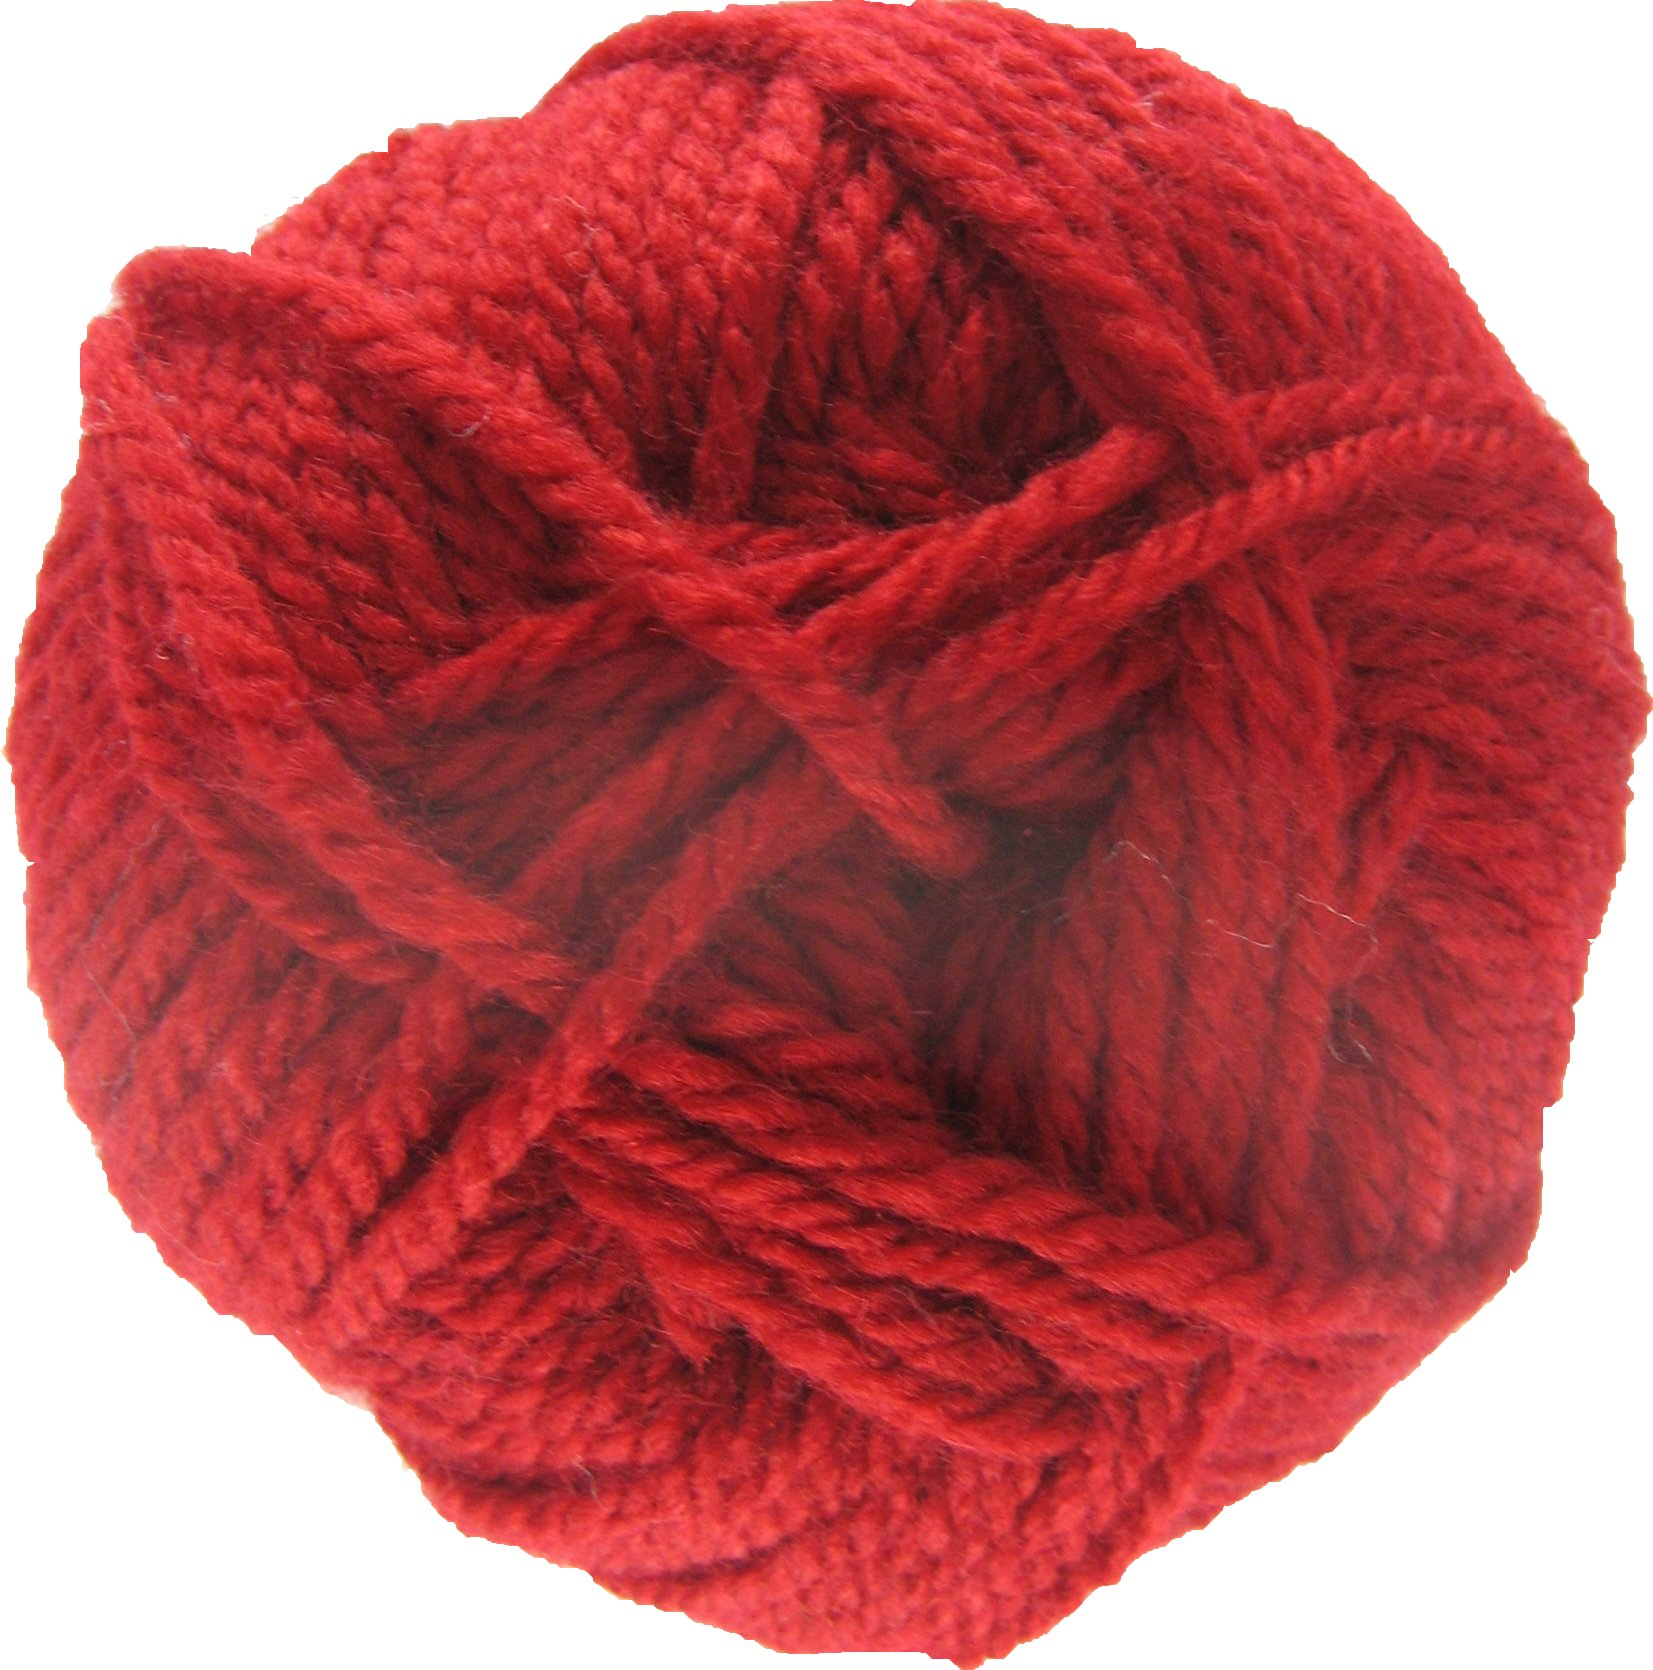 wool craft 100g stylecraft 4 ply knitting wool yarn red